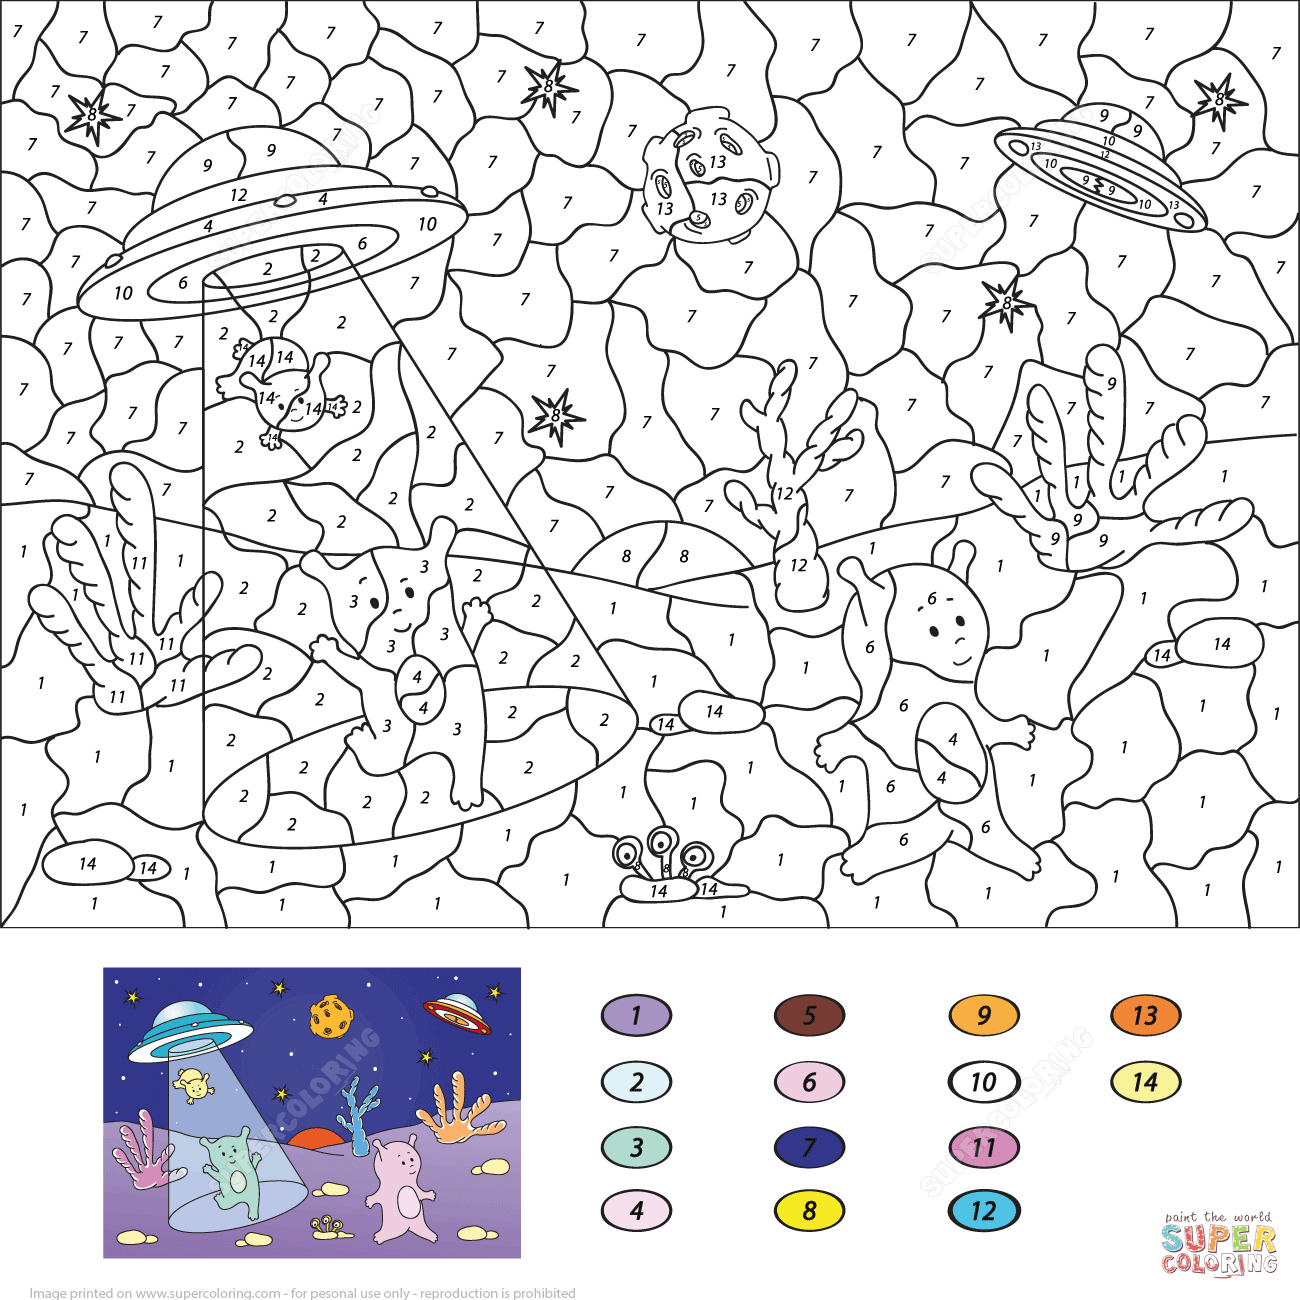 Cute Aliens Color By Number From Color By Number Worksheets Category Select Fro Free Printable Coloring Pages Free Printable Coloring Printable Coloring Pages